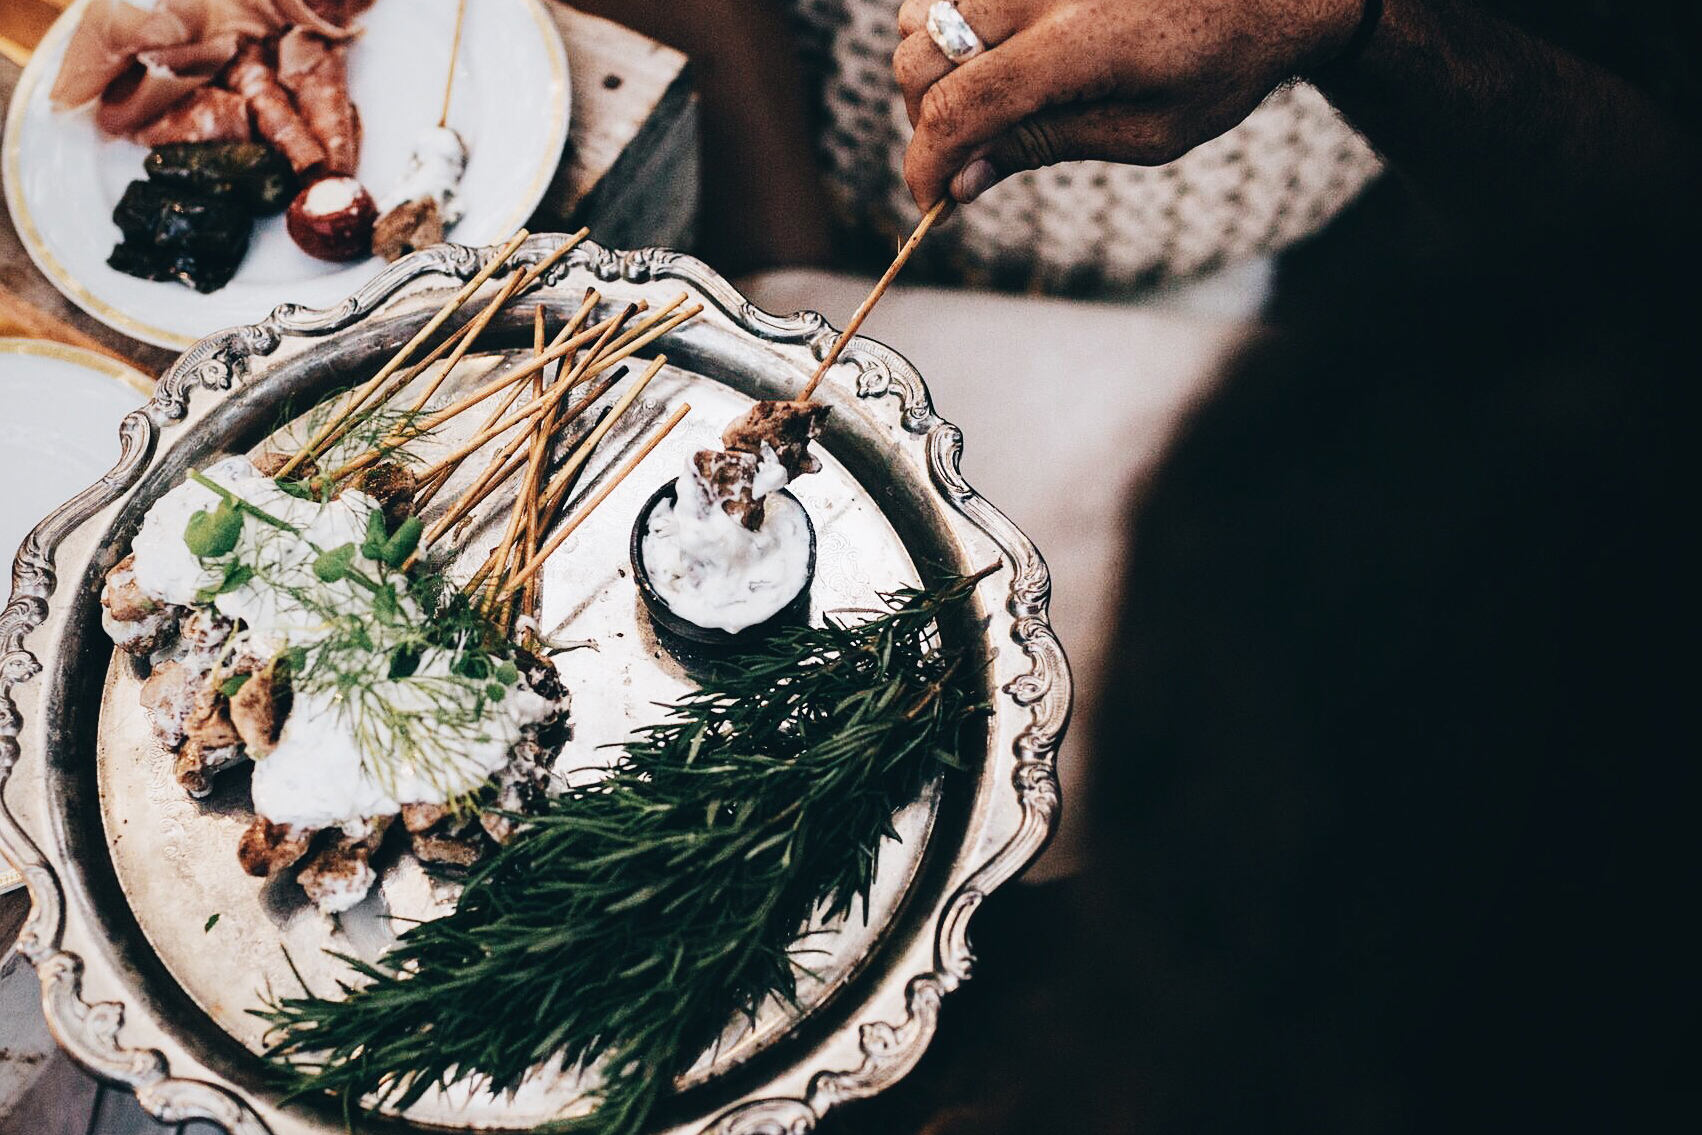 Spoon Fed Catering - Utilising only the highest of quality seasonal produce, you are guaranteed a Fine Dining experience of flavours and presentation. They do Grazing Stations, Alfresco, Shared Platters, Desserts and more.